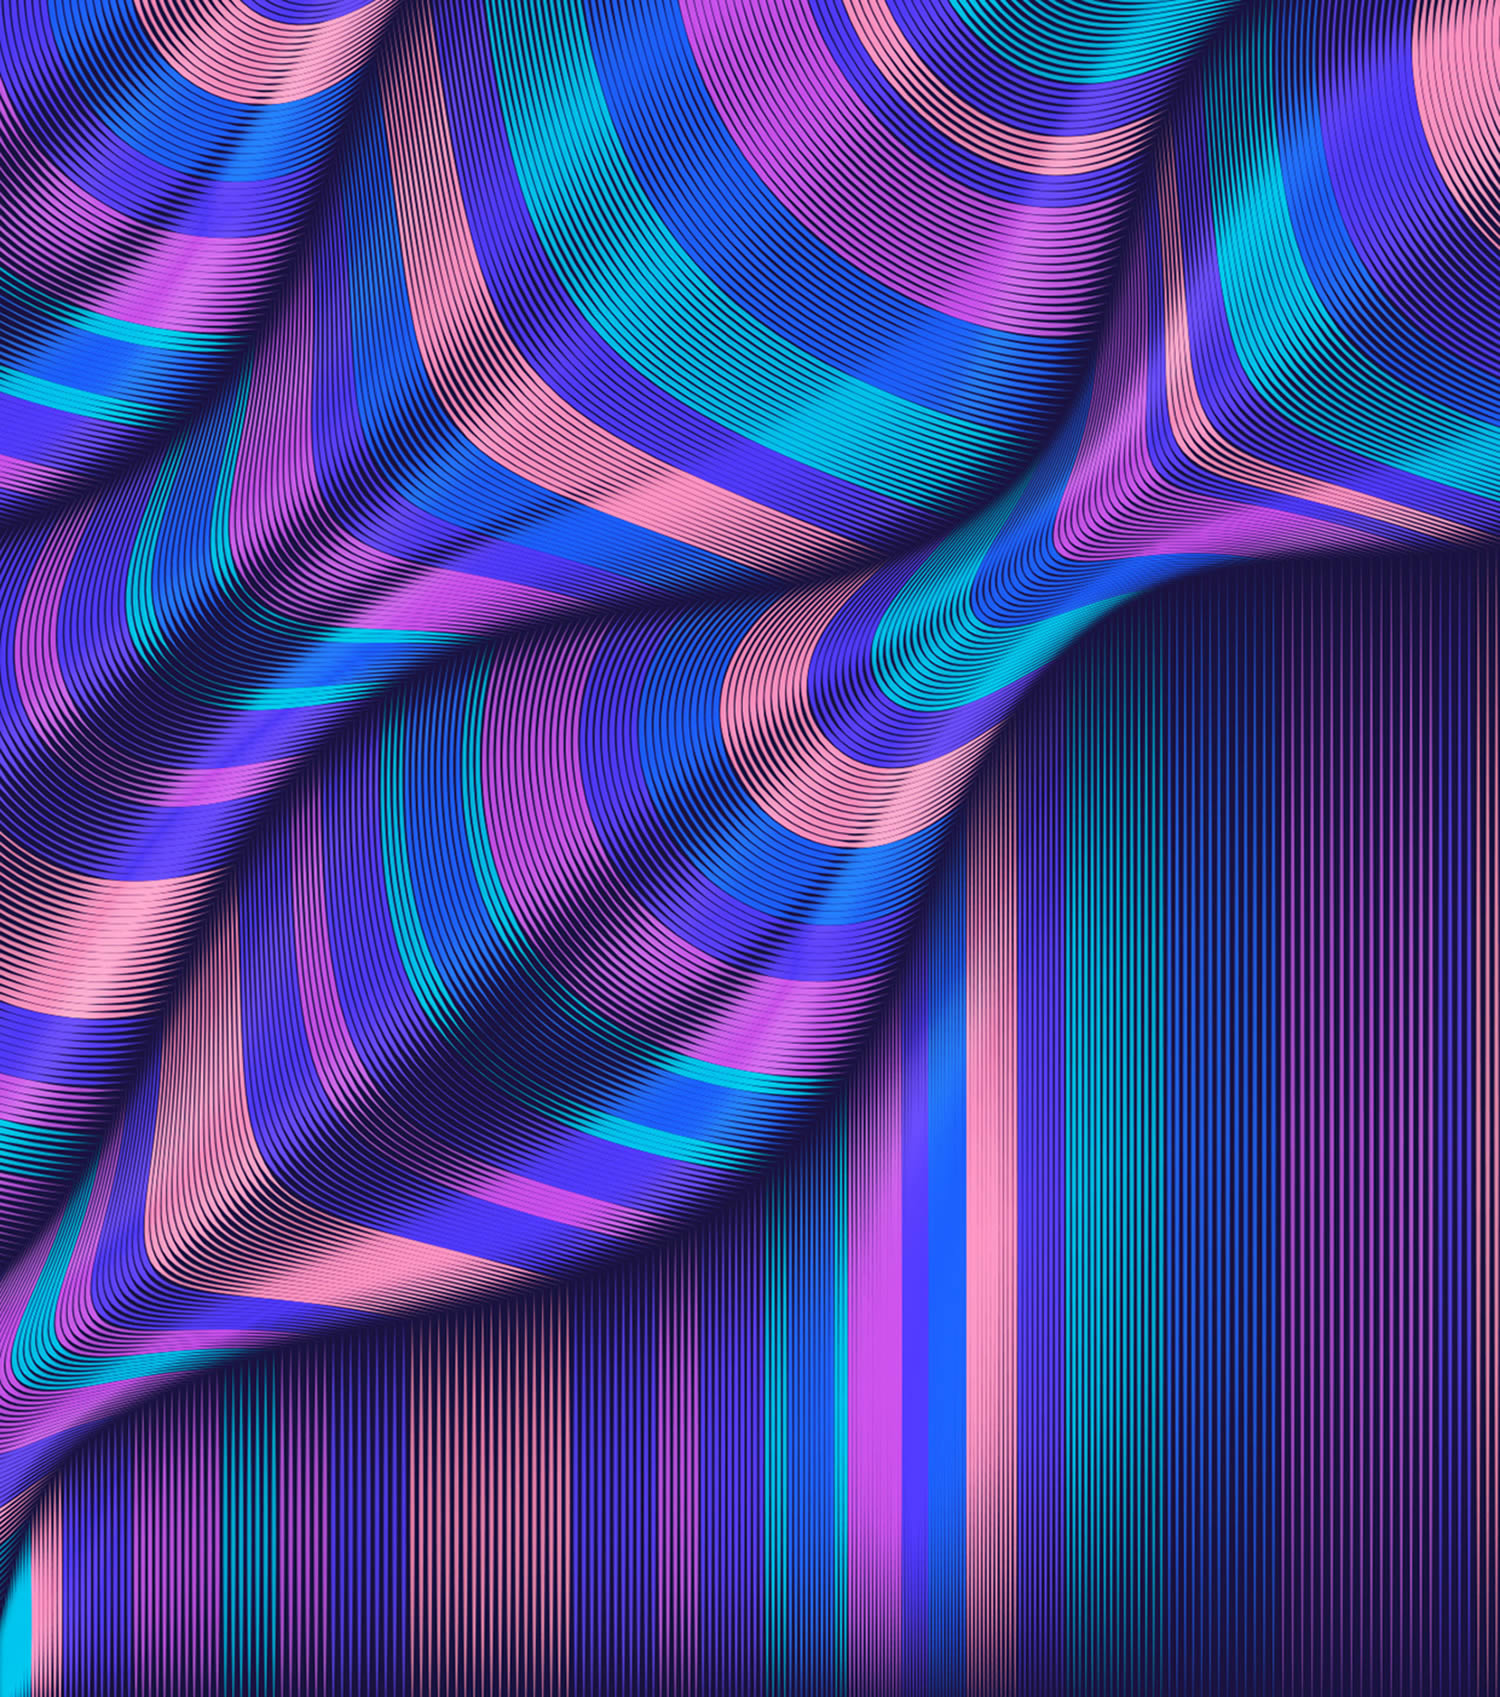 purple and pink bubbly waves, illustration